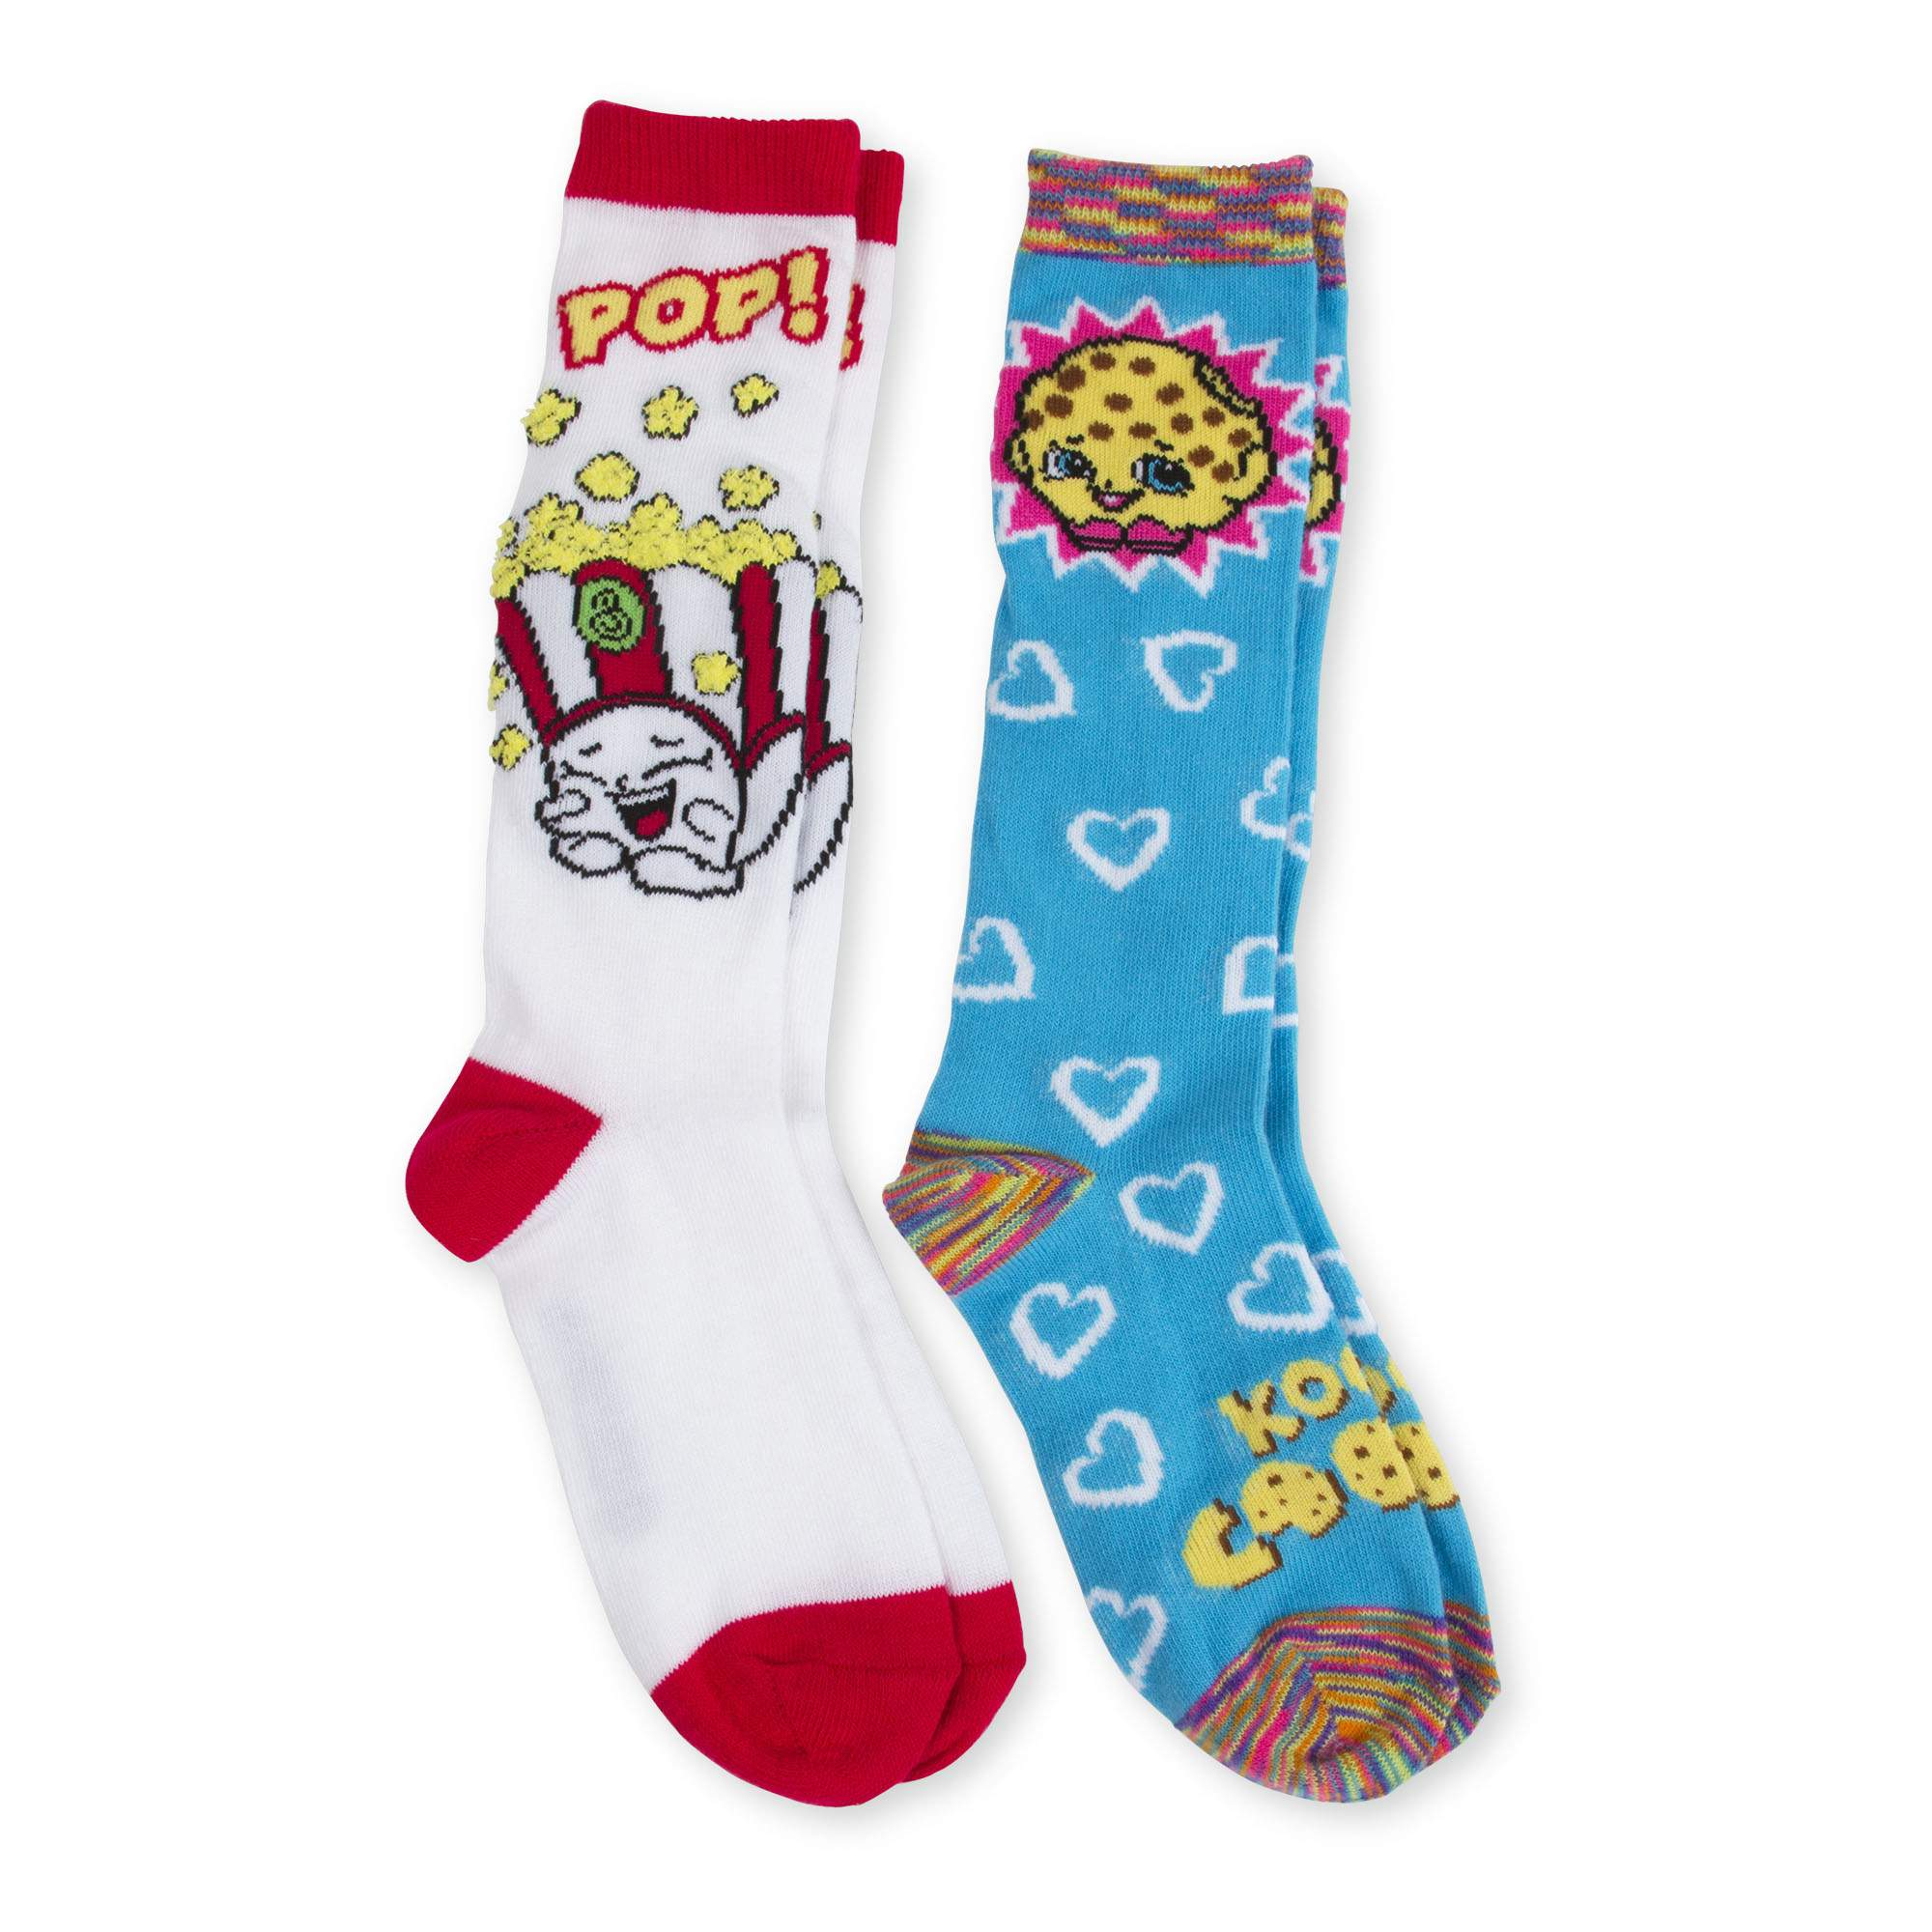 ecf1592b9 Trolls - Knee High Socks